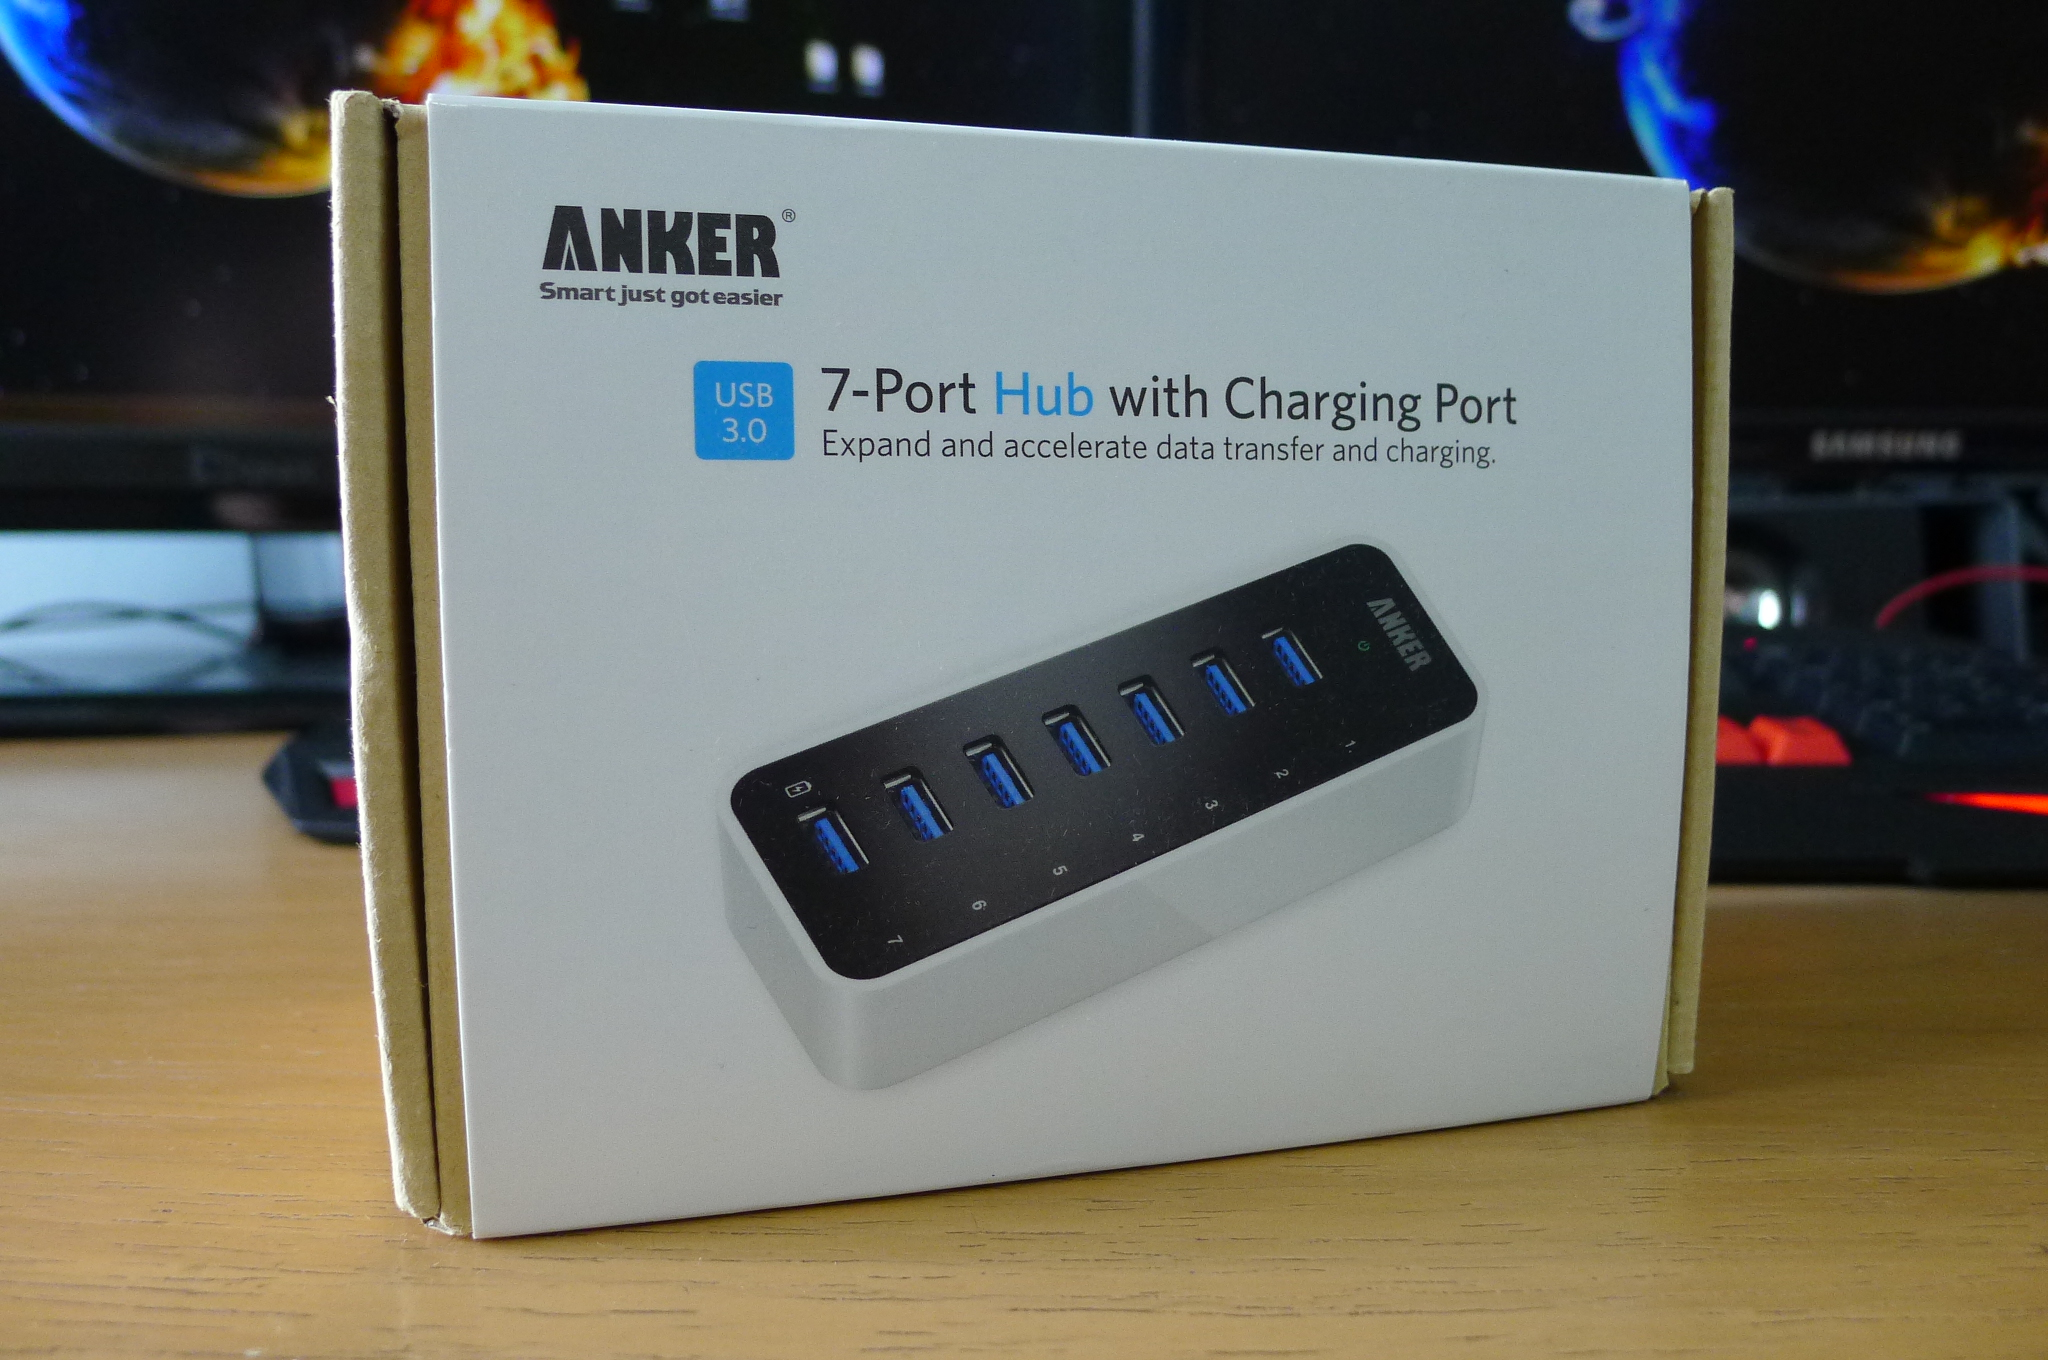 Anker USB 3.0 7-Port Hub Review! (Charger Doctor)